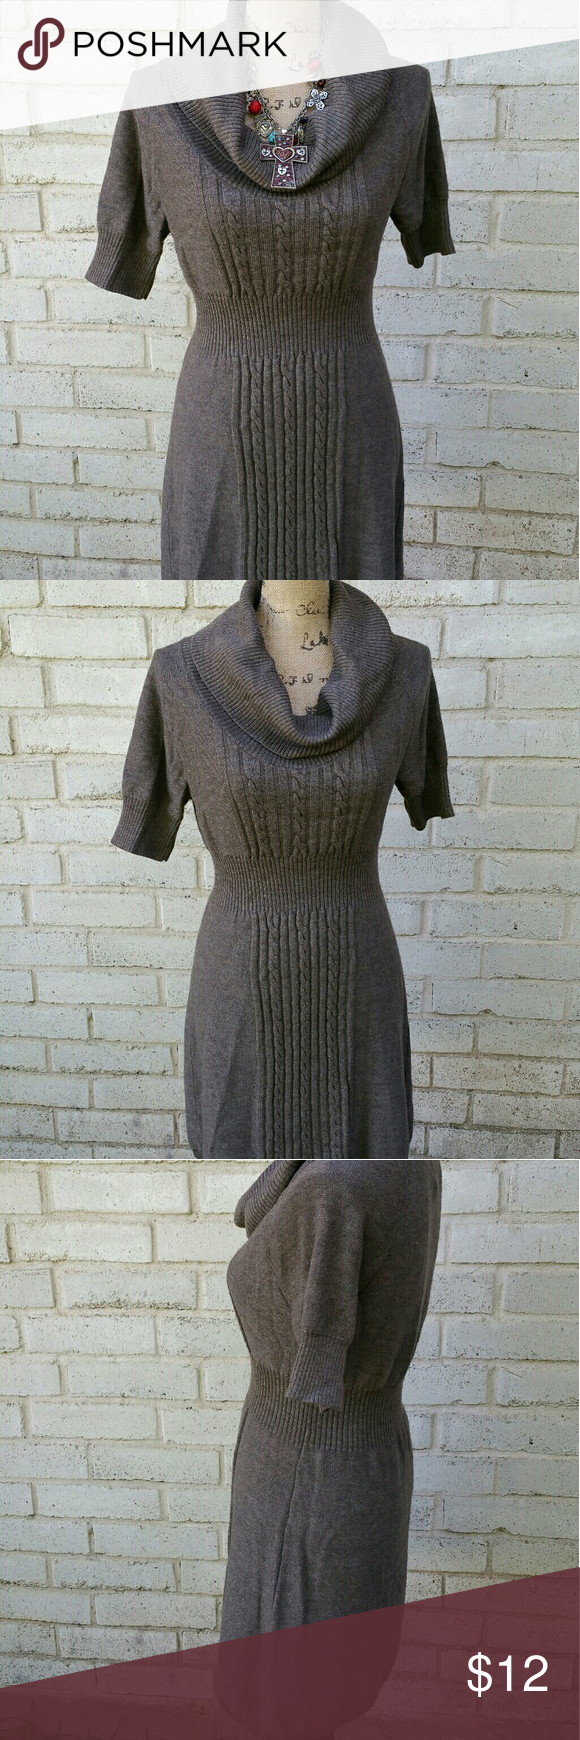 Dark Taupe Brown Cowl Neck Sweater Dress Large | Cowl neck sweater ...